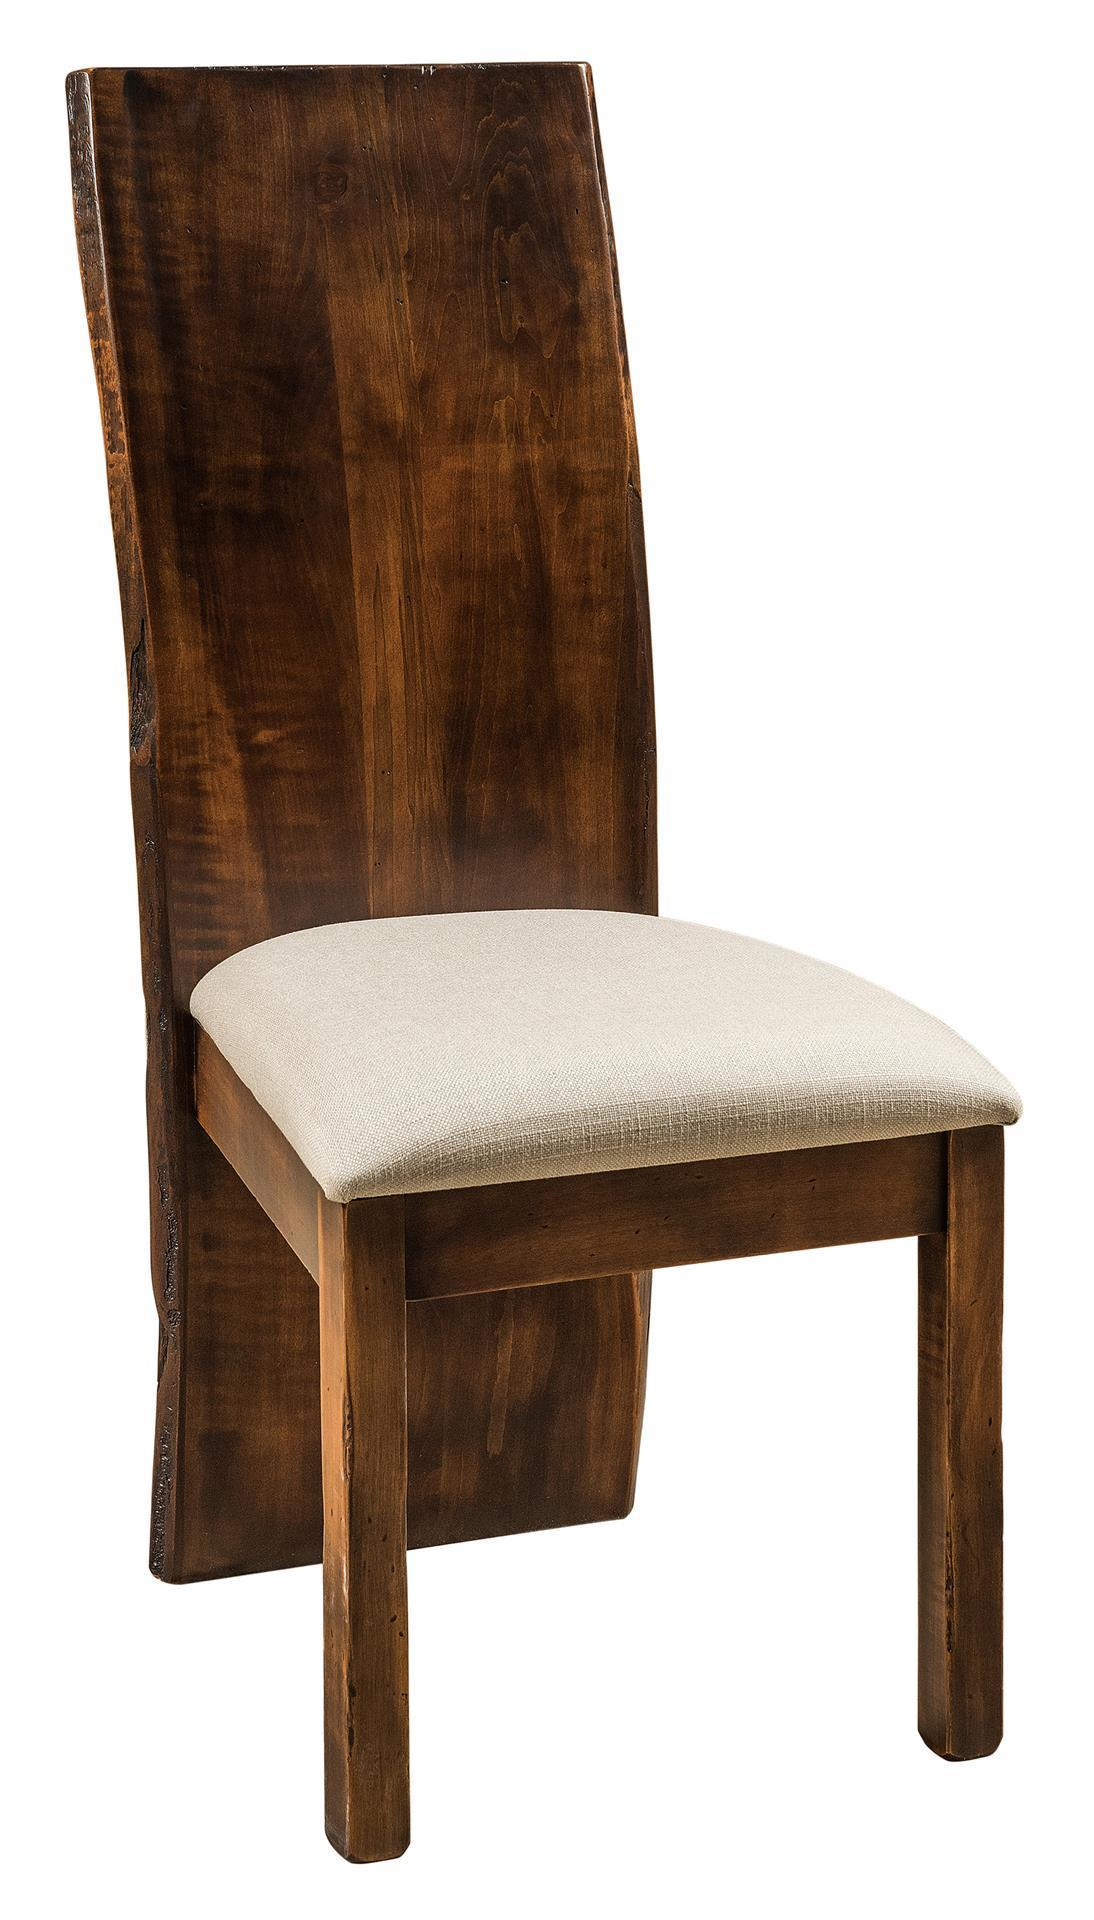 evergreen dining chair from dutchcrafters amish furniture evergreen amish contemporary dining chair